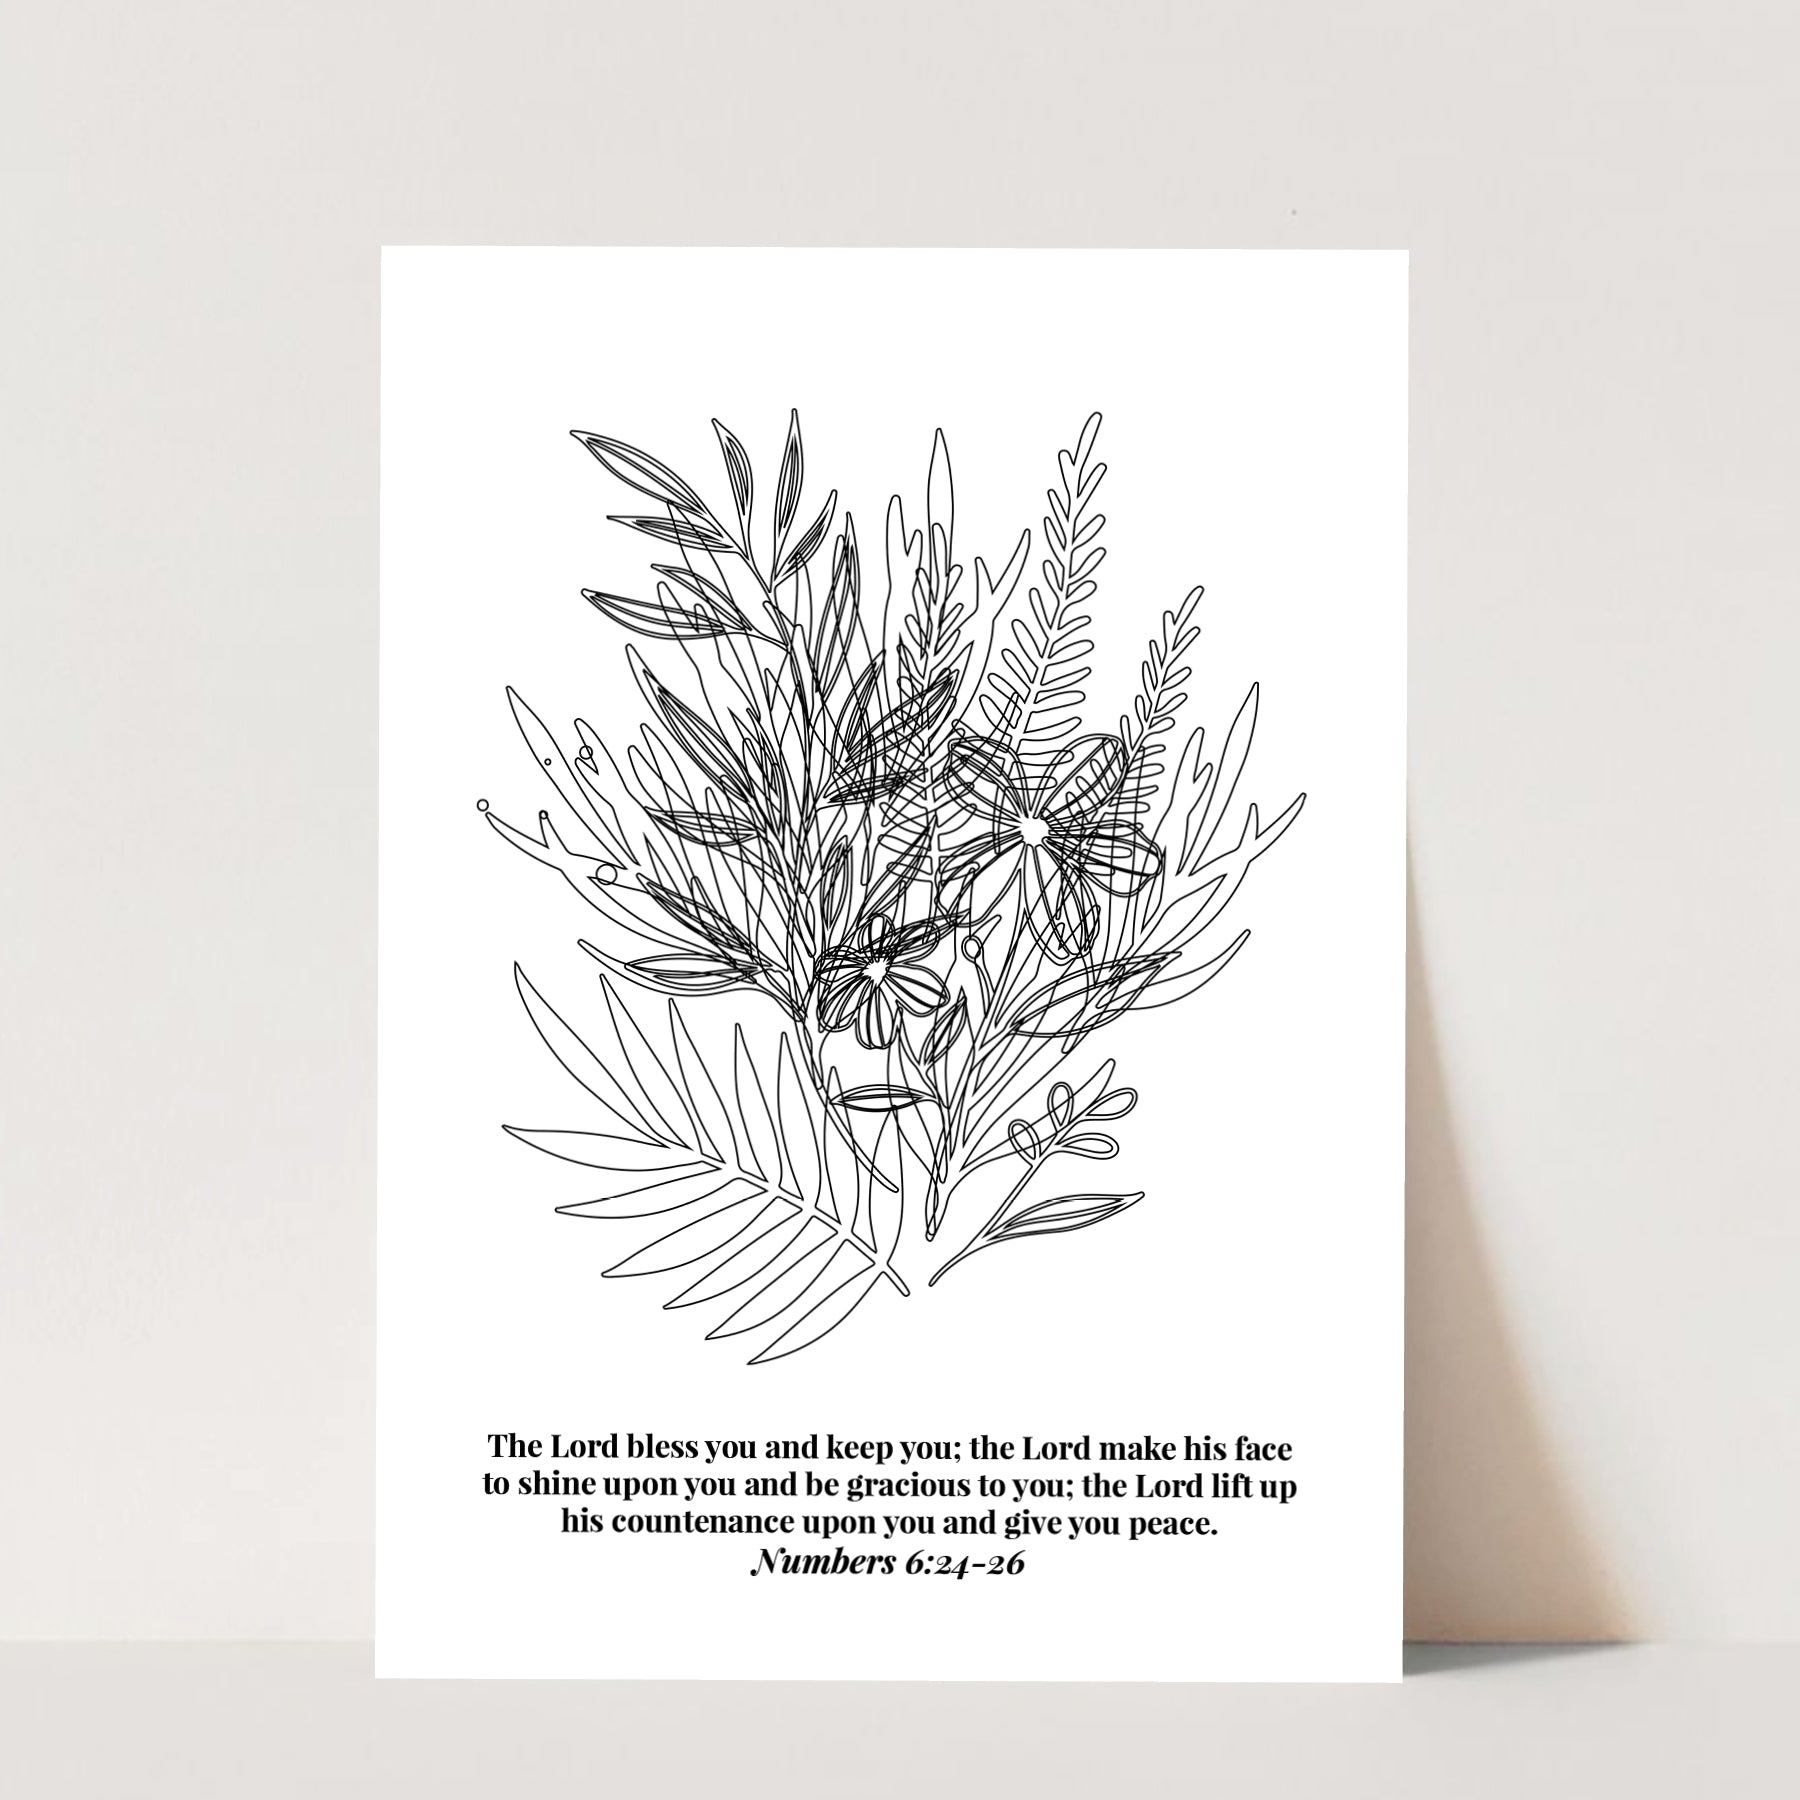 The Lord Bless You and Keep You... -Numbers 6:24-26 Line Art Sketch Print